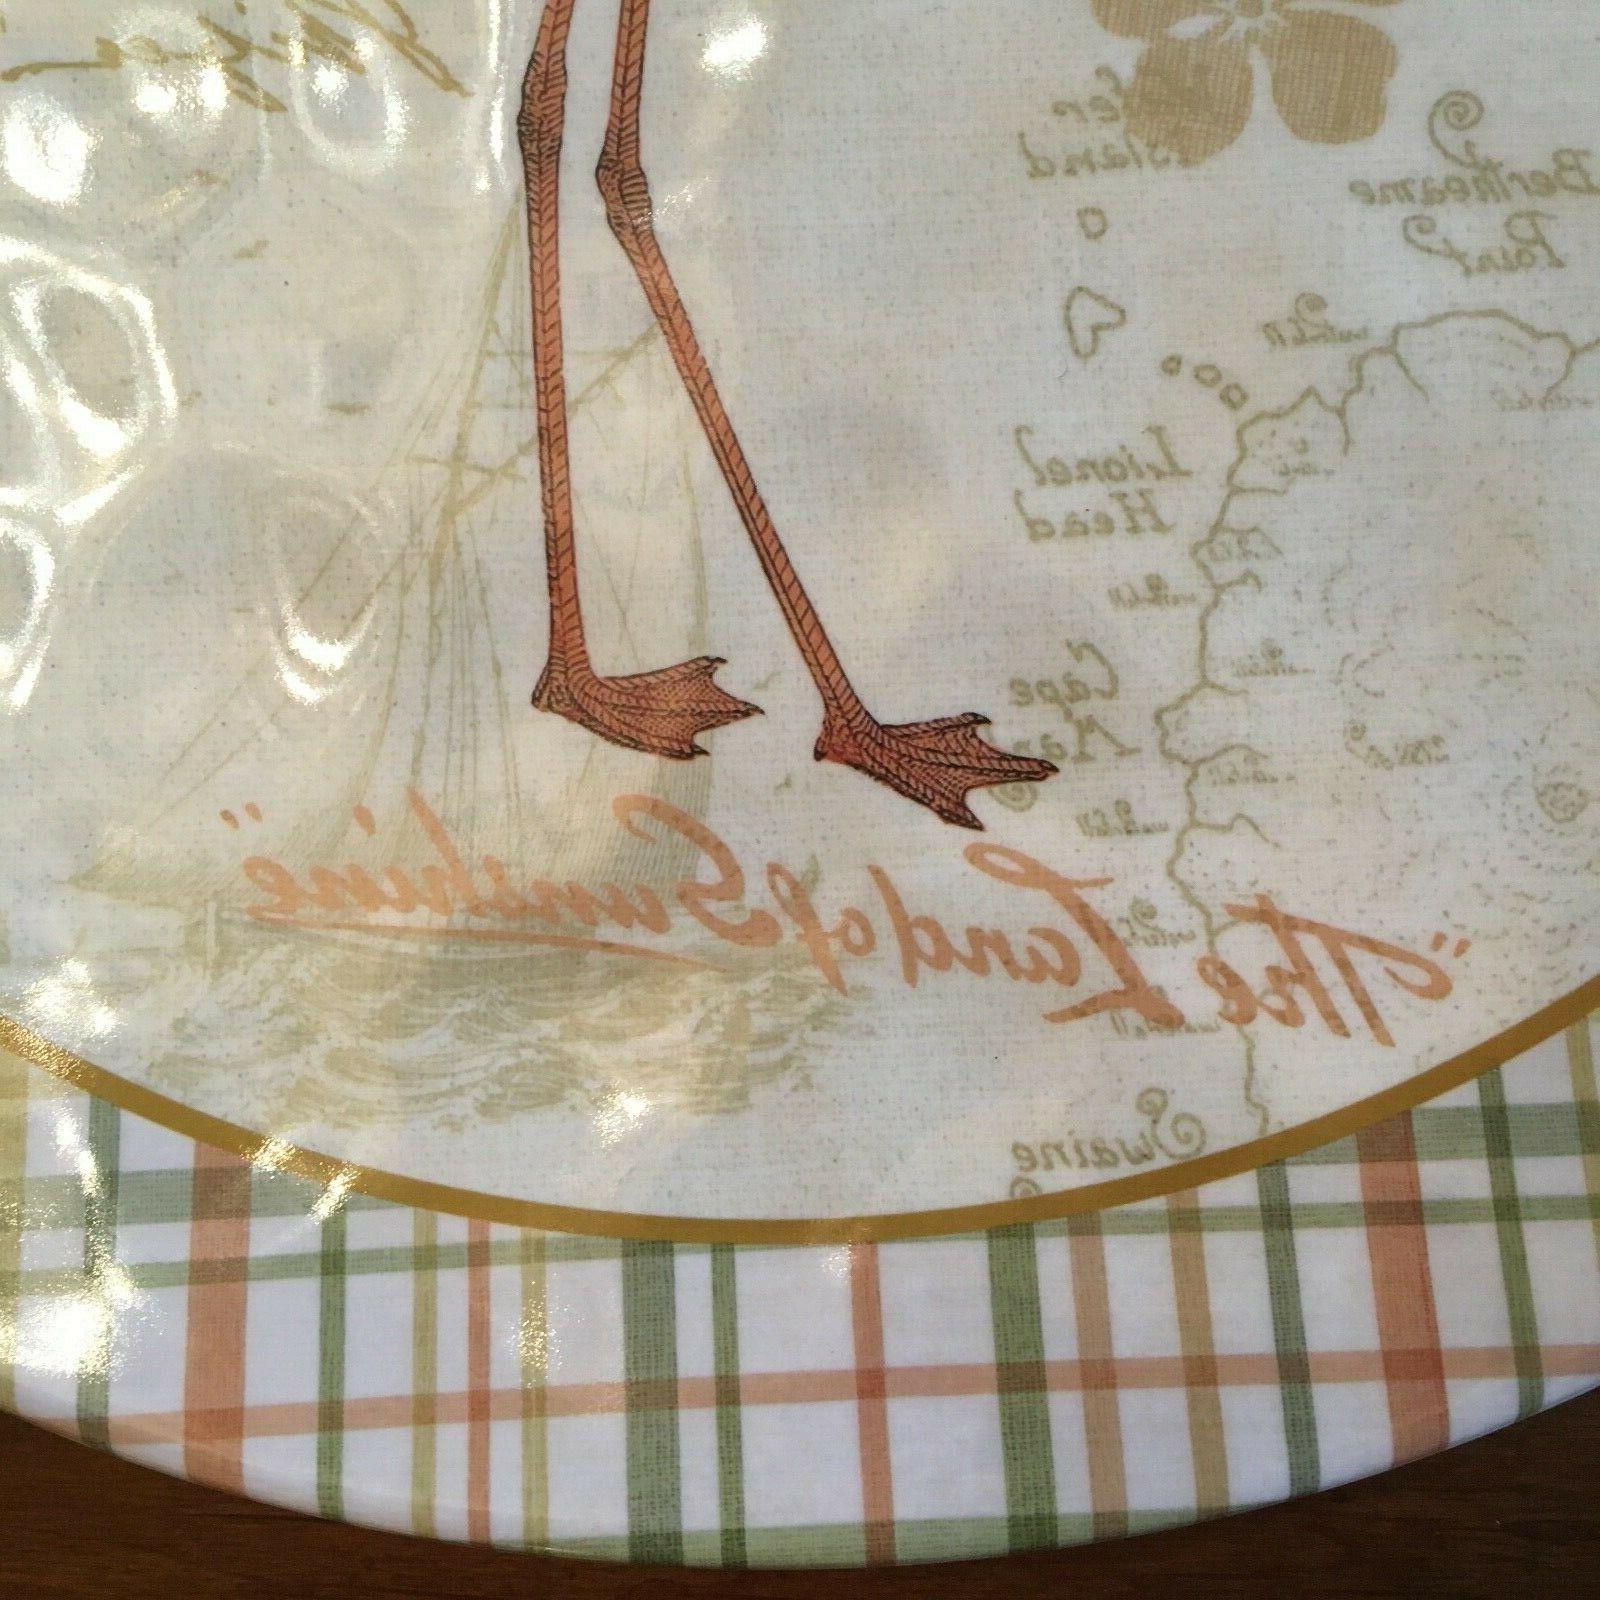 Certified Floridian Dinner Plates 2 NEW